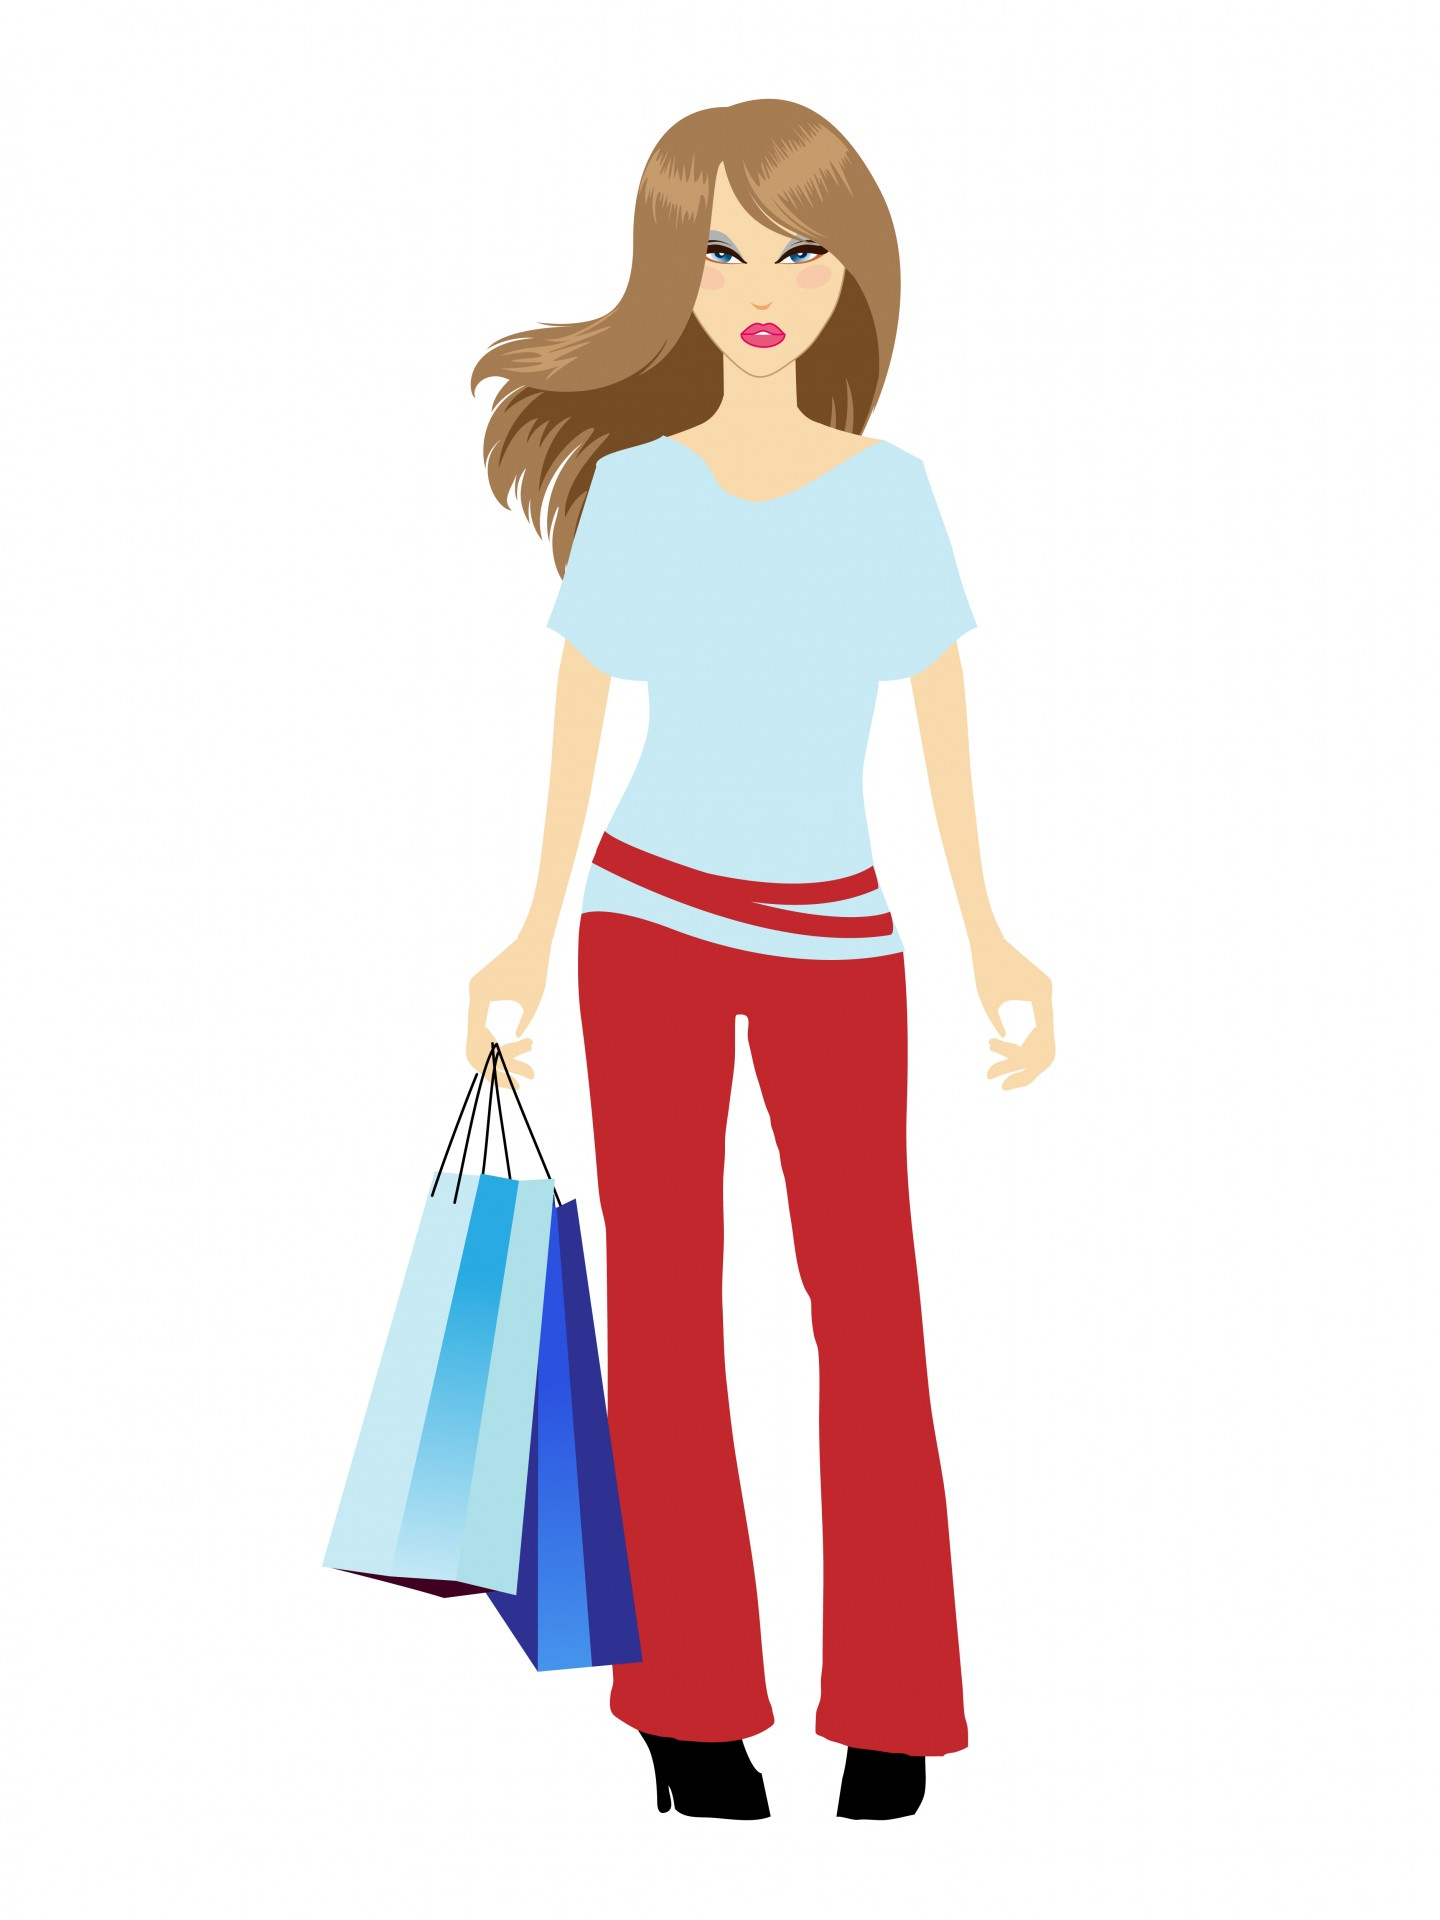 Trendy girl clipart clipart library download Woman,female,girl,person,lady - free photo from needpix.com clipart library download